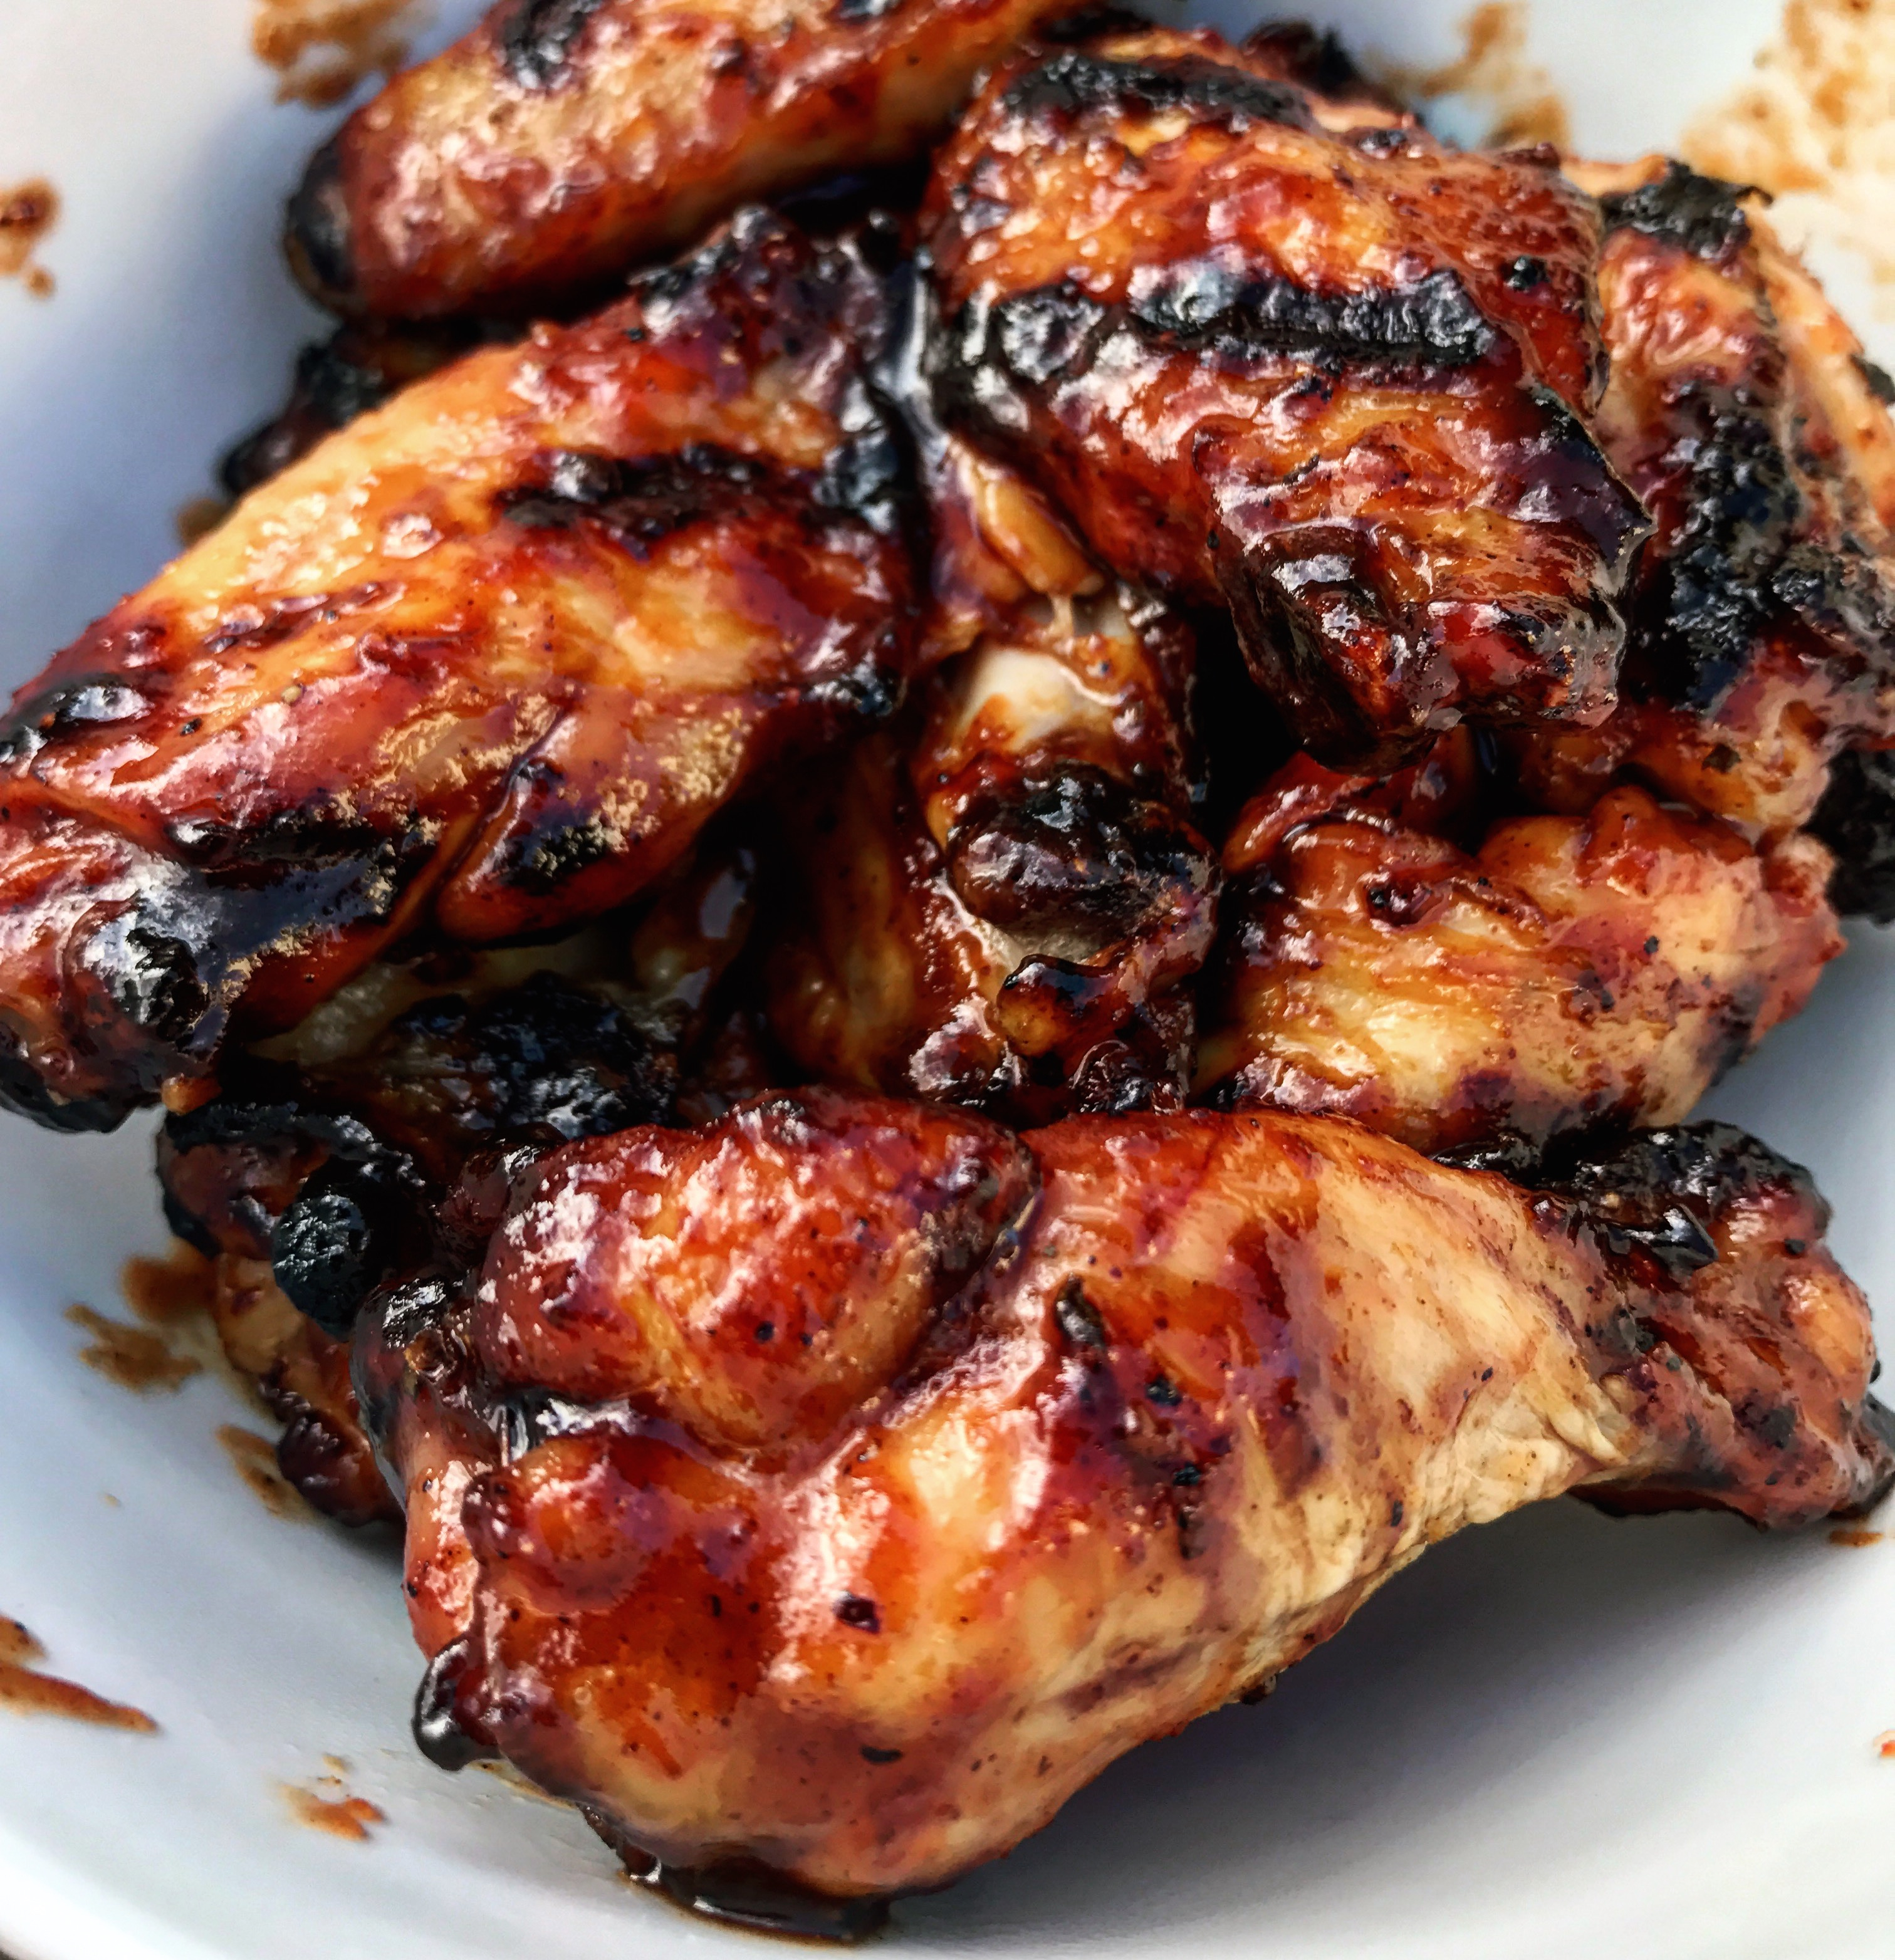 Smoked chicken wings ready for eating!